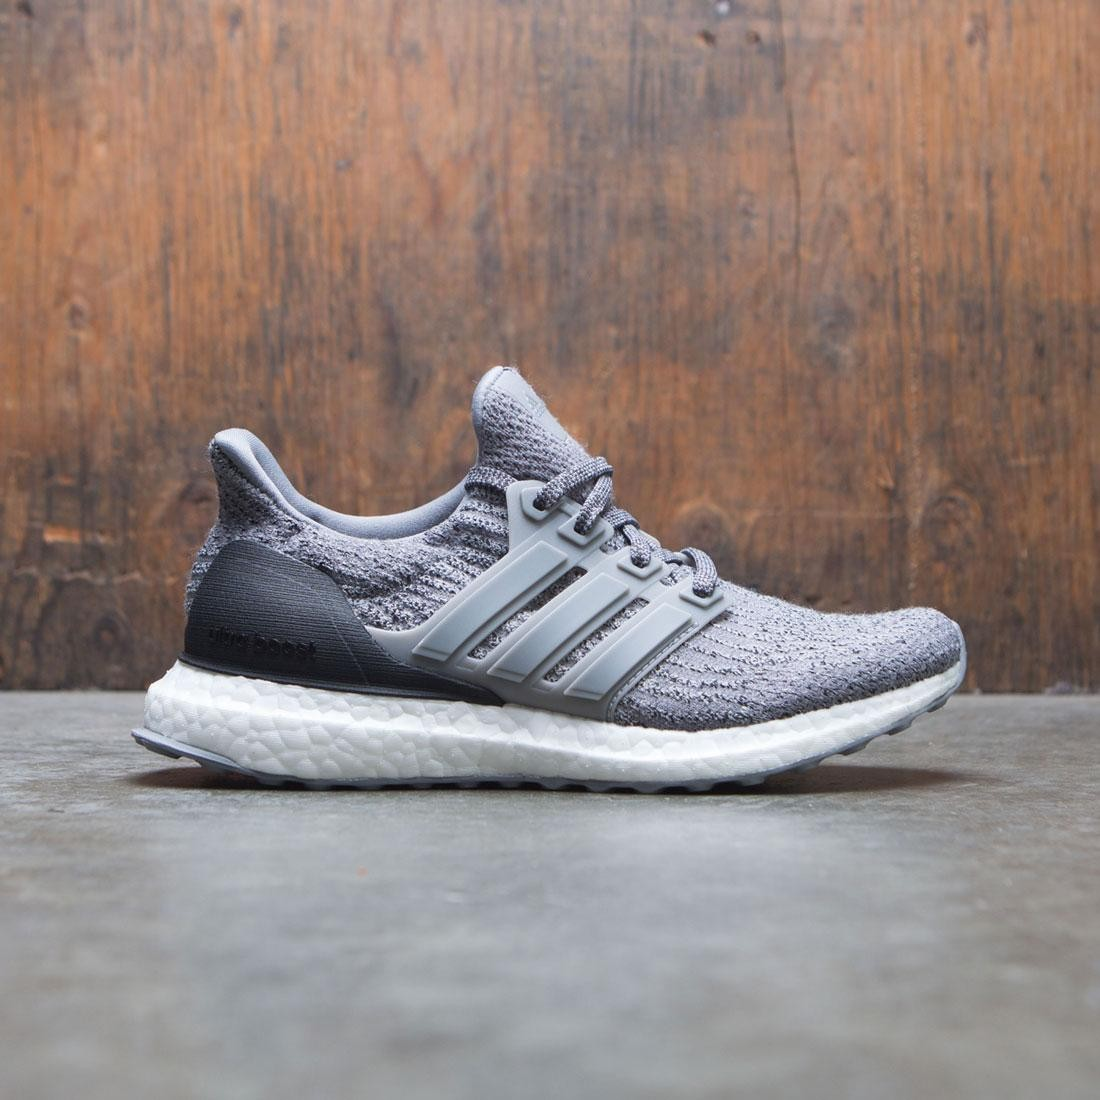 6ab4cb7c5d648 Adidas Big Kids UltraBOOST J gray grey three grey four